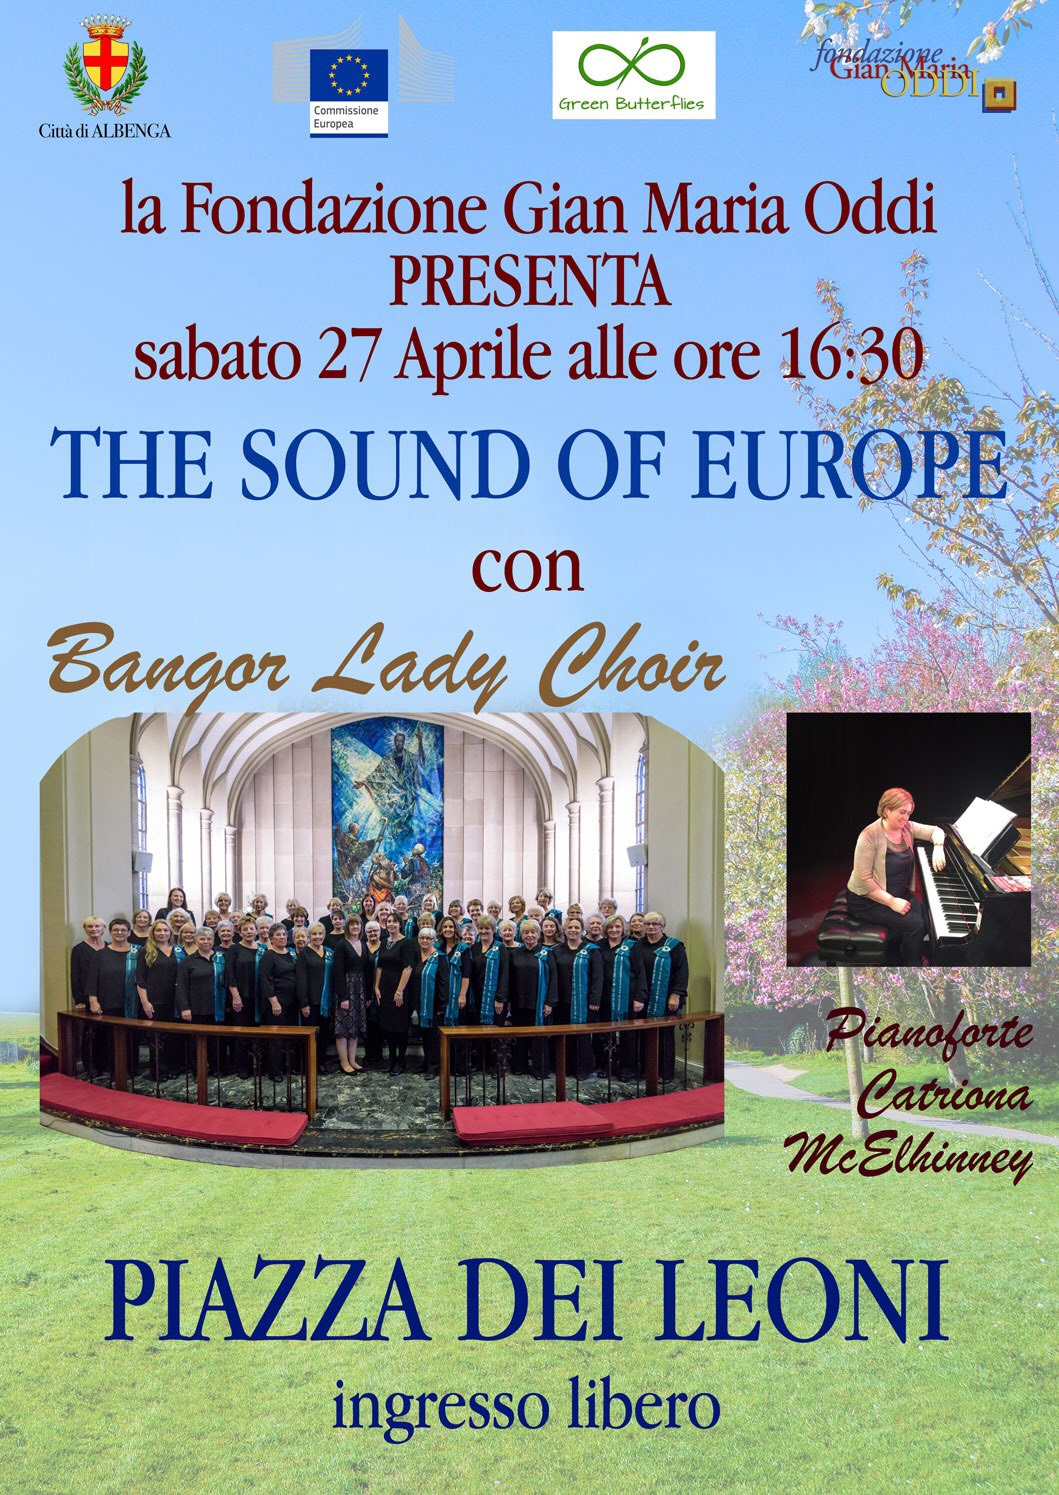 The sound of Europe